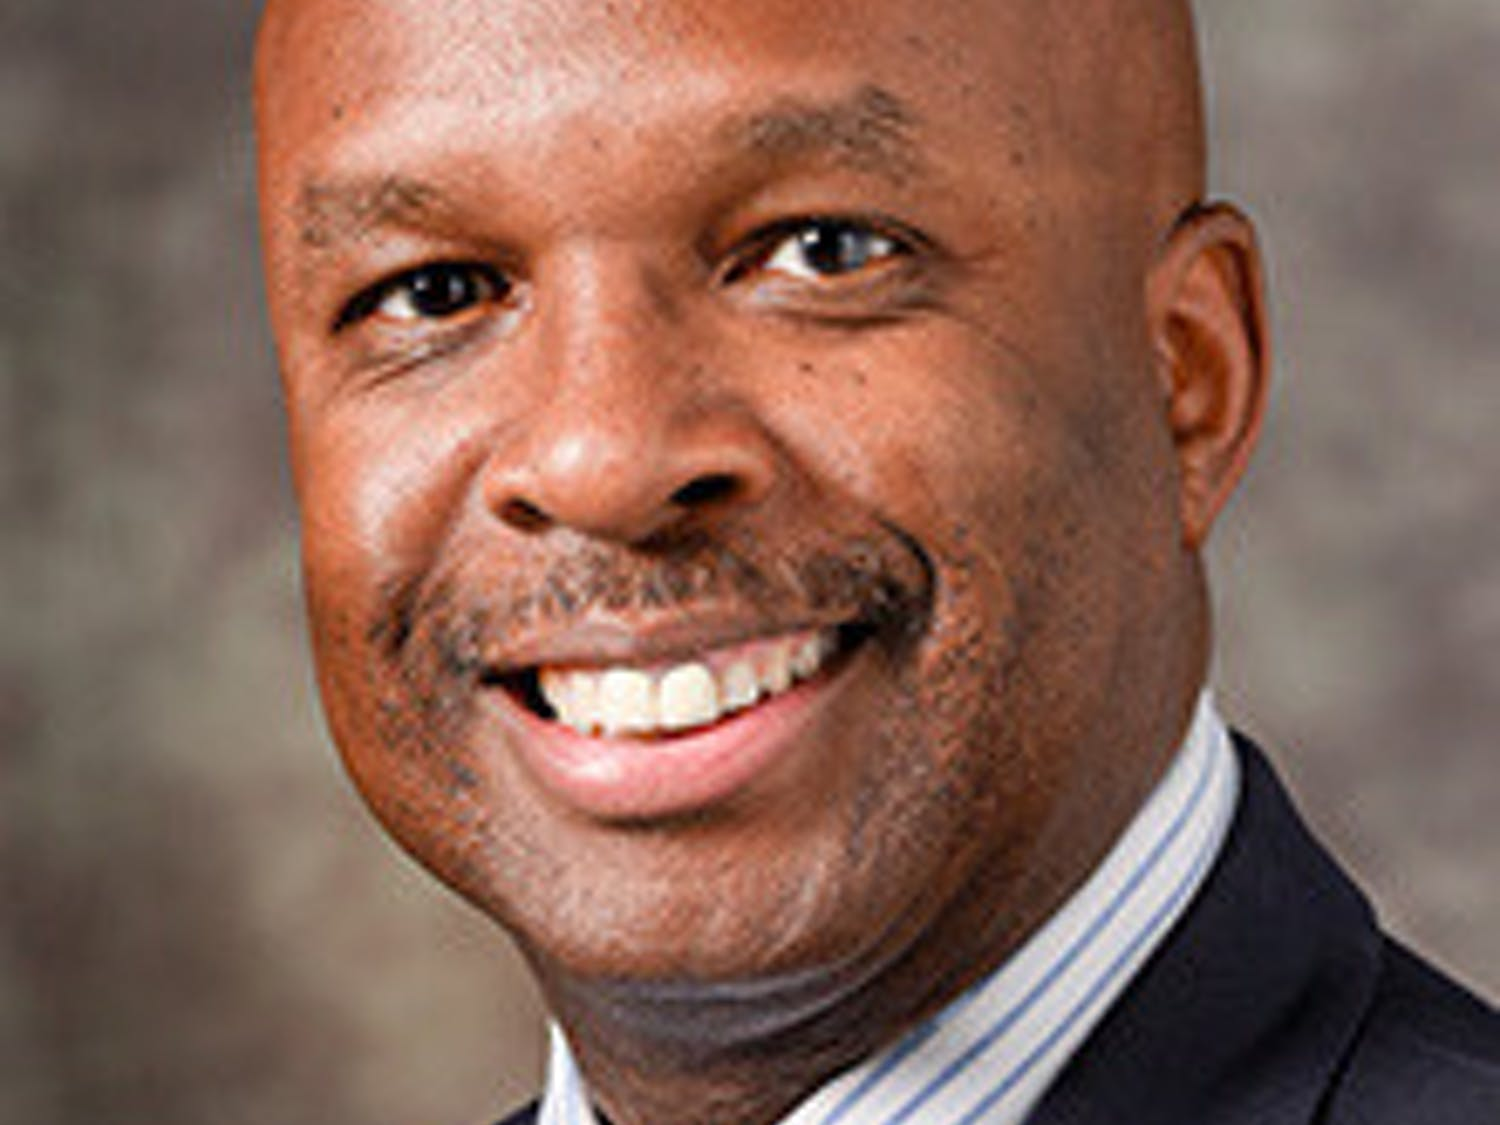 Dr. Leon Haley Jr., the CEO of UF Health Jacksonville and Dean of UF College of Medicine — Jacksonville. Dr. Haley Jr. died Saturday during a watercraft accident.